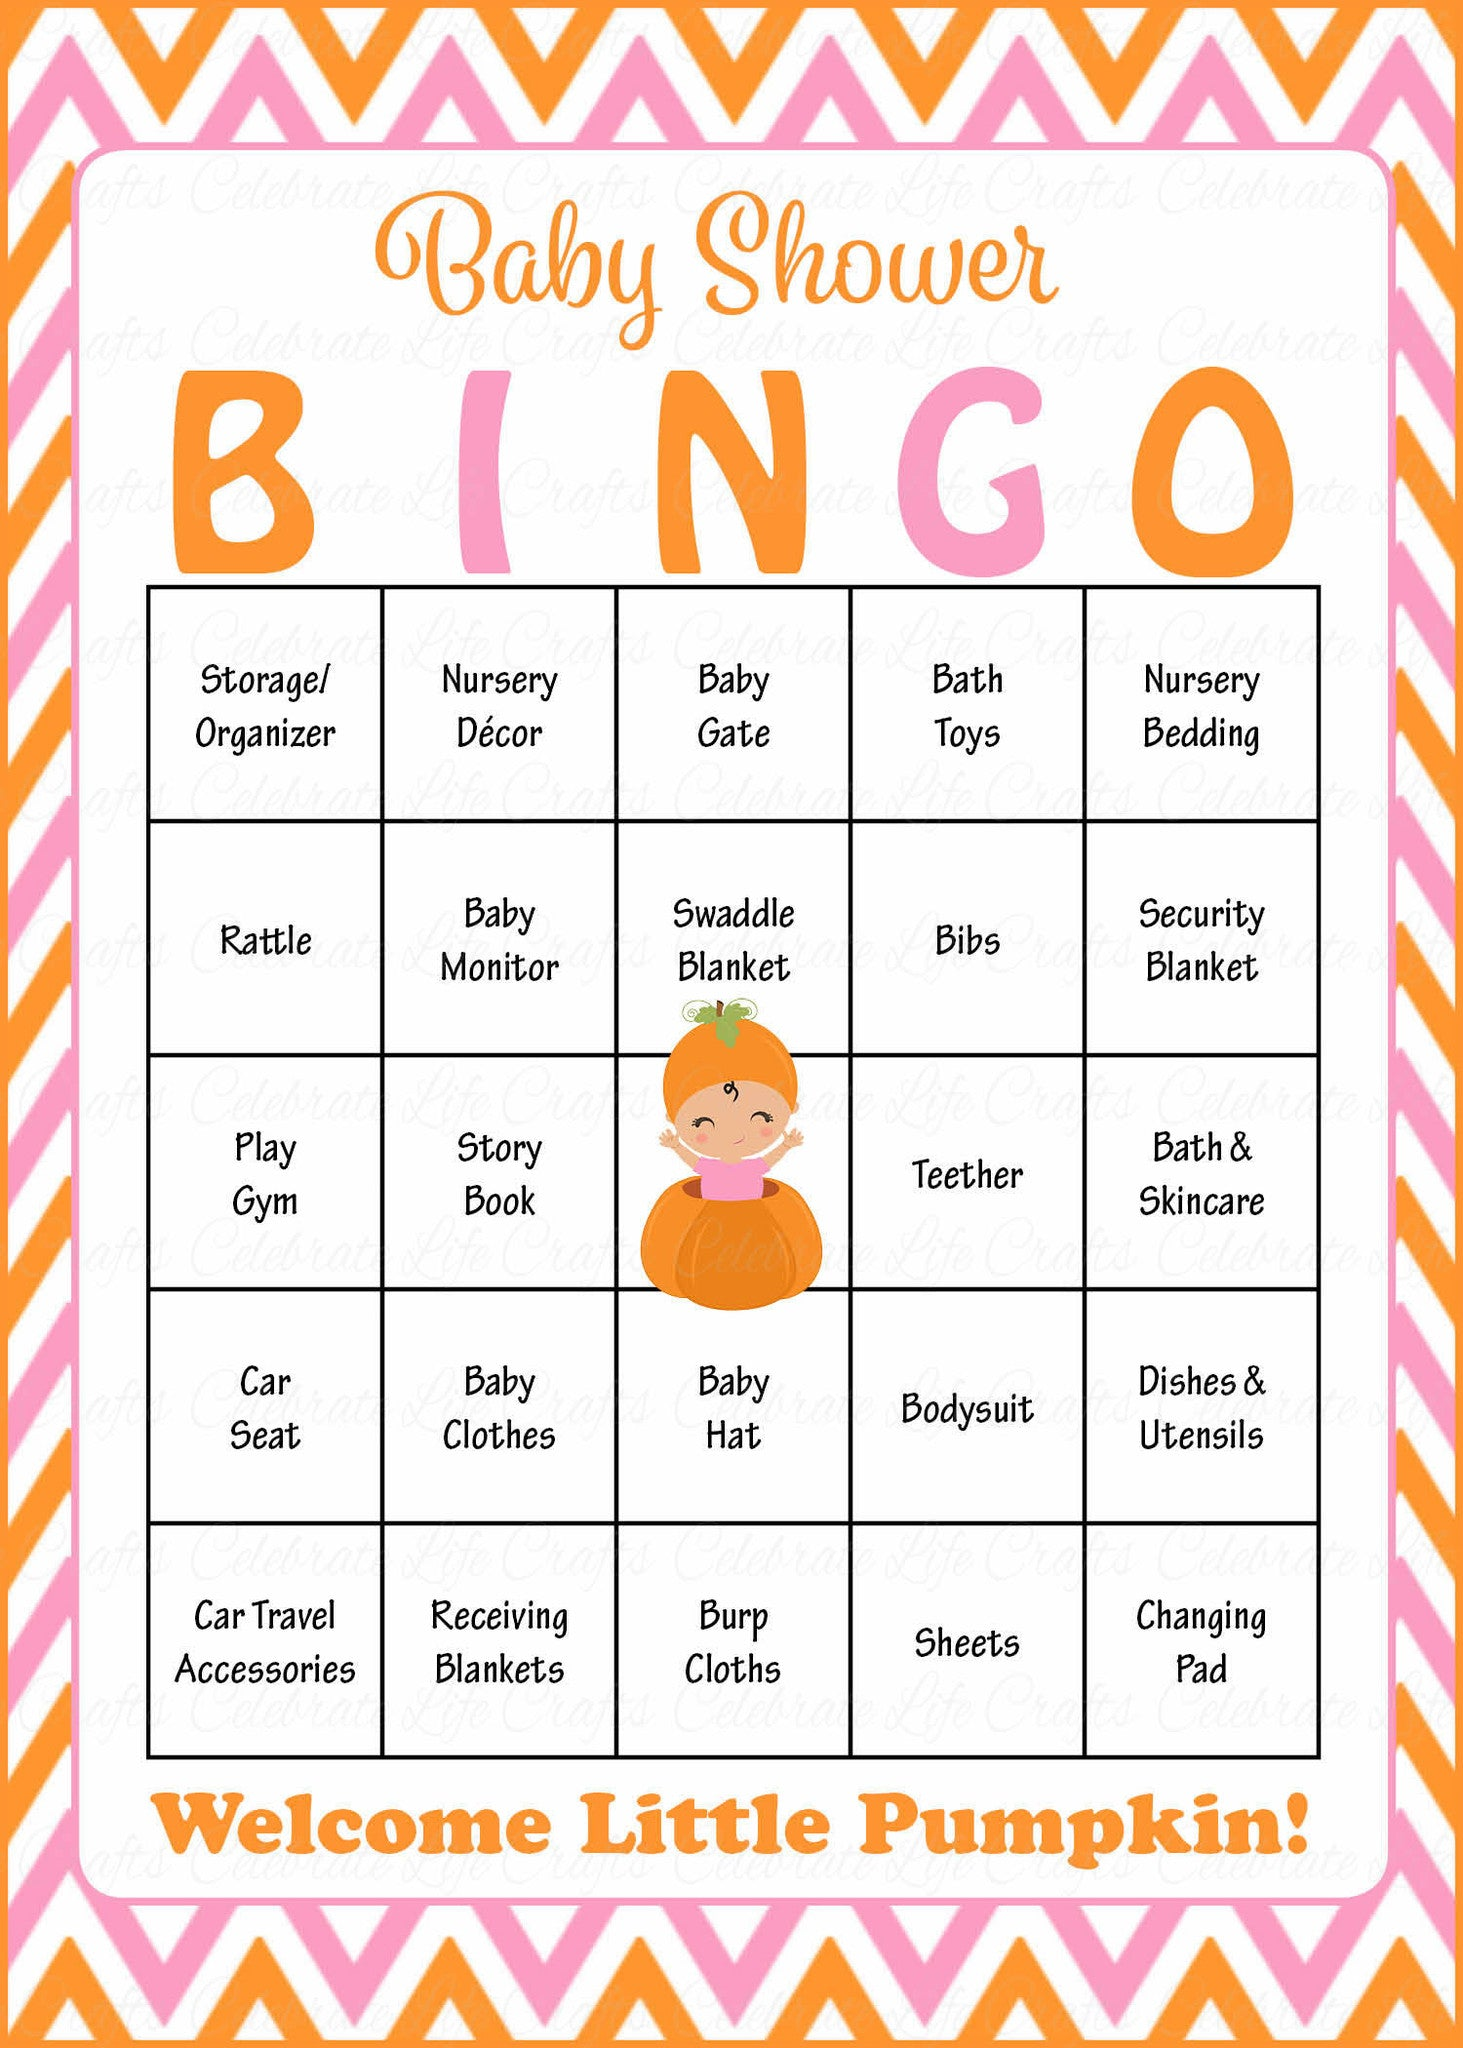 photo about Printable Bingo Chips named Minor Pumpkin Little one Shower Match - Little one Bingo Playing cards for Woman - Printable Down load - Prefilled - Orange Red